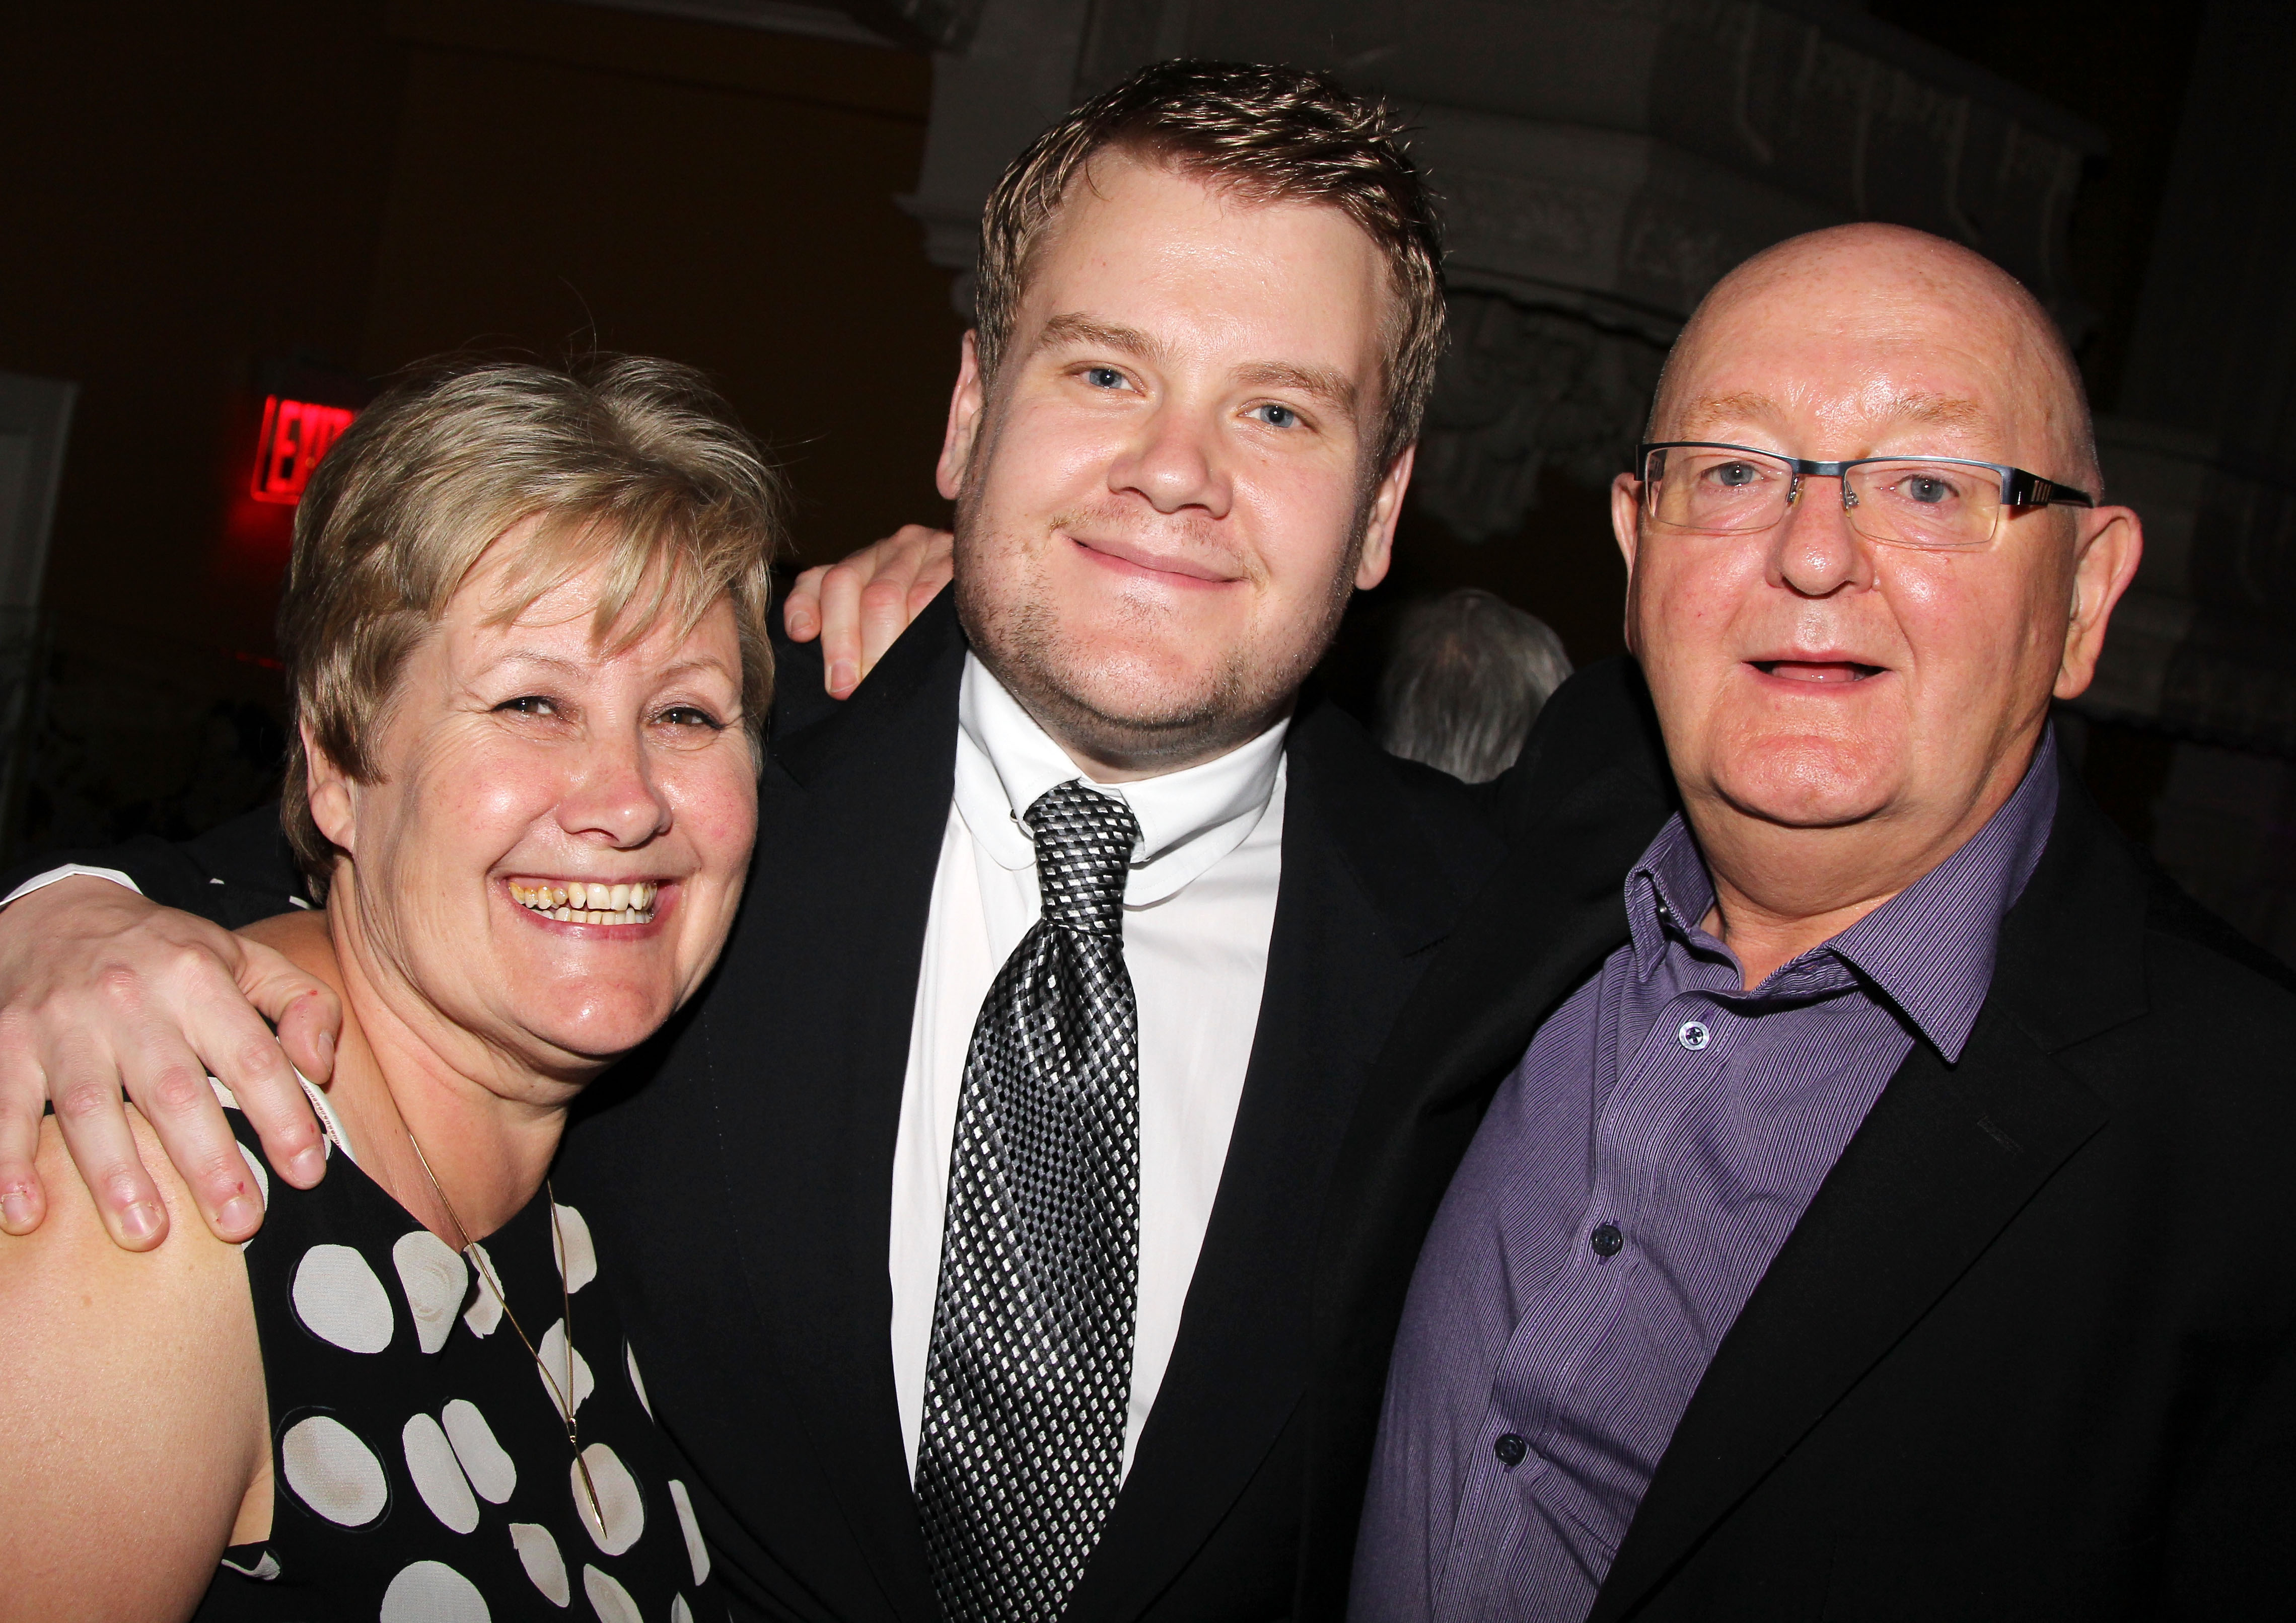 James Corden poses with his mother Margaret Corden and father Malcolm Corden as they attend the after party for the  One Man, Two Guvnors  Broadway Opening Night at The Liberty Theatre on April 18, 2012 in New York City.